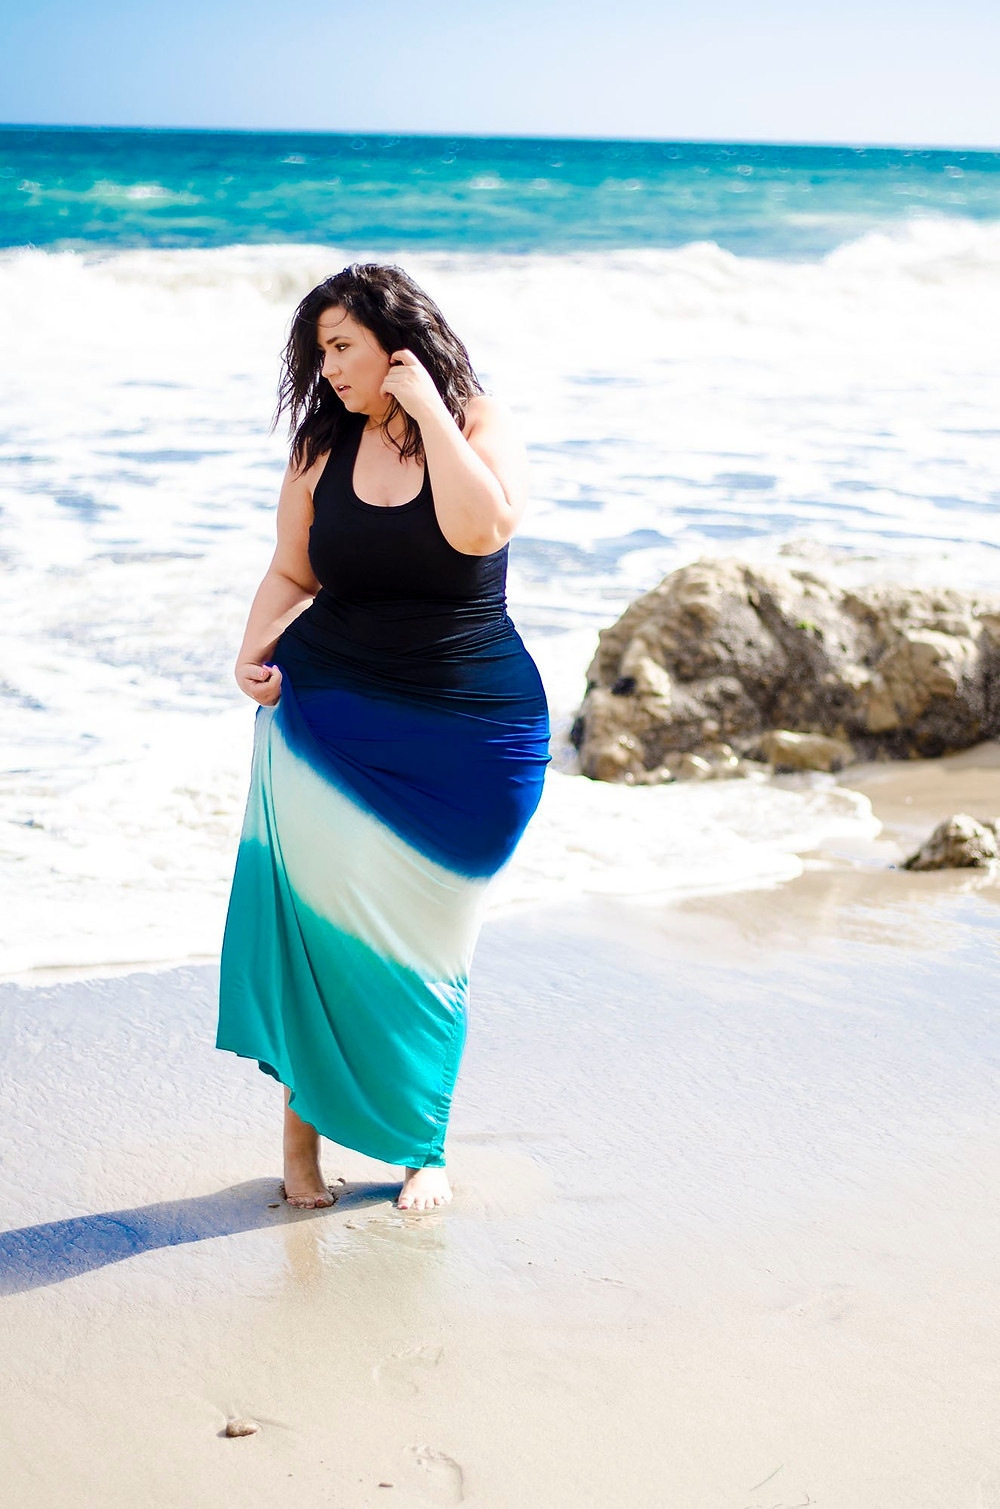 neiman marcus plus size maxi dress ootd el matador beach photo malibu sometimes glam crystal coons